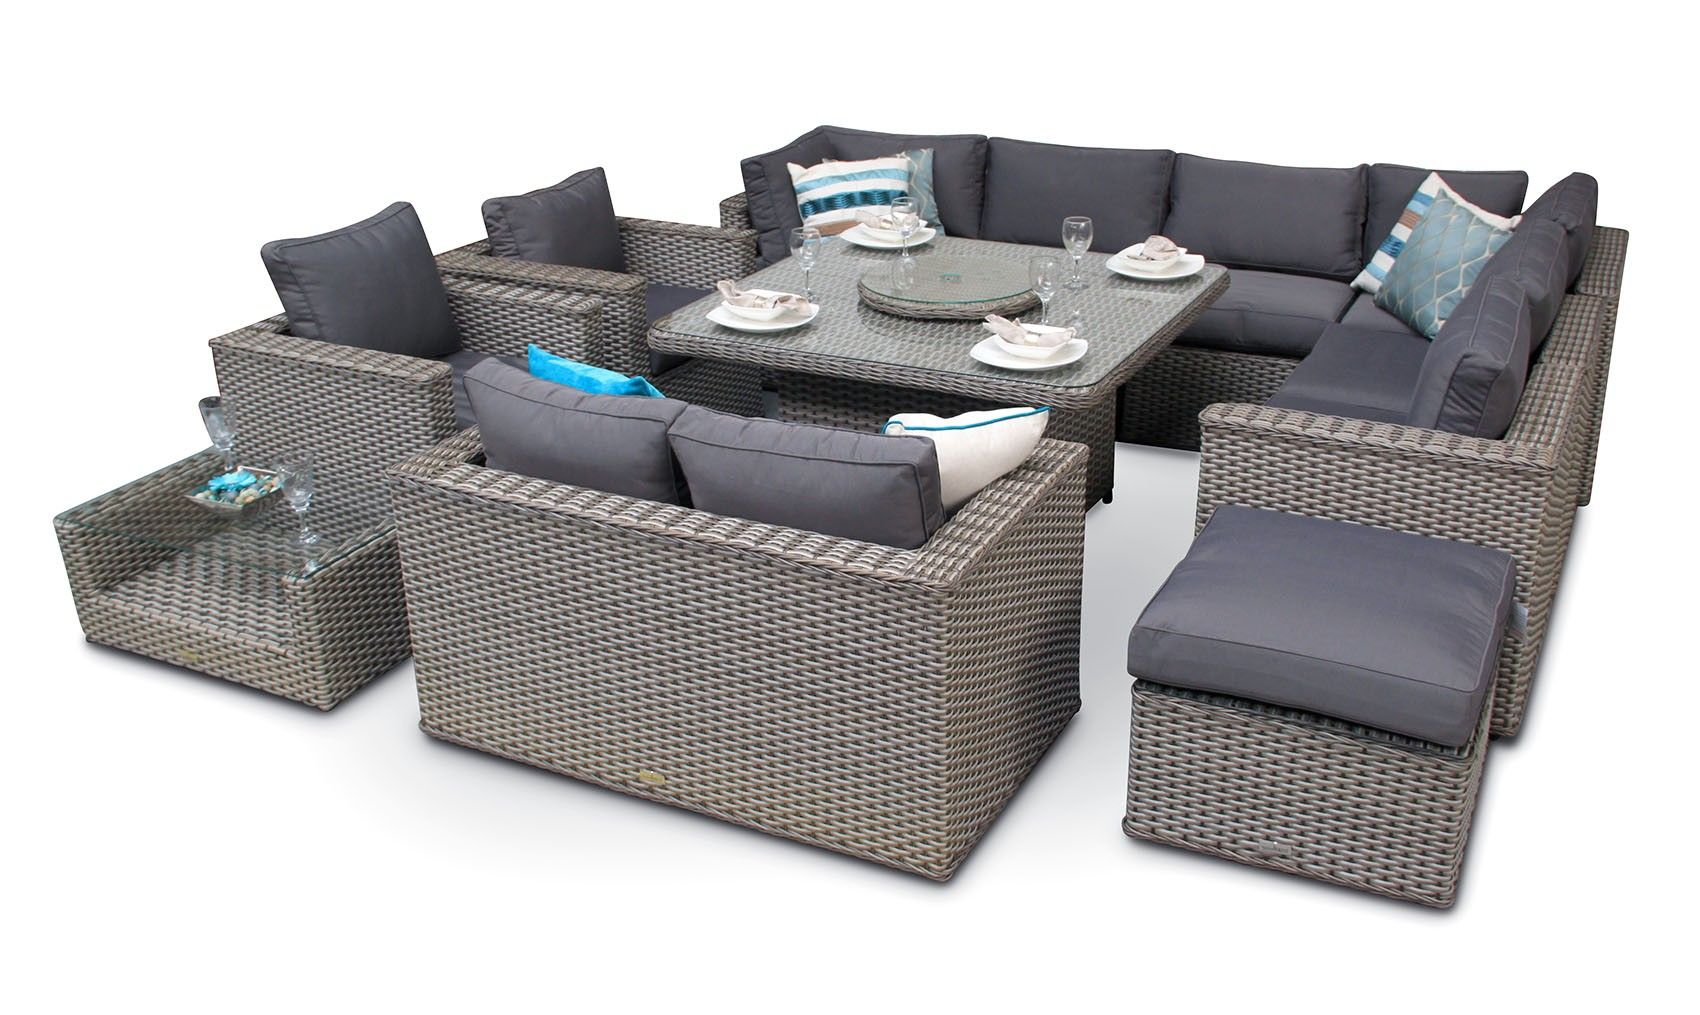 Bahia Modular Rattan Sofa Square Table Dining Set 11pc Whitewash Grey Outdoor Living Furniture Rattan Sofa Corner Dining Set